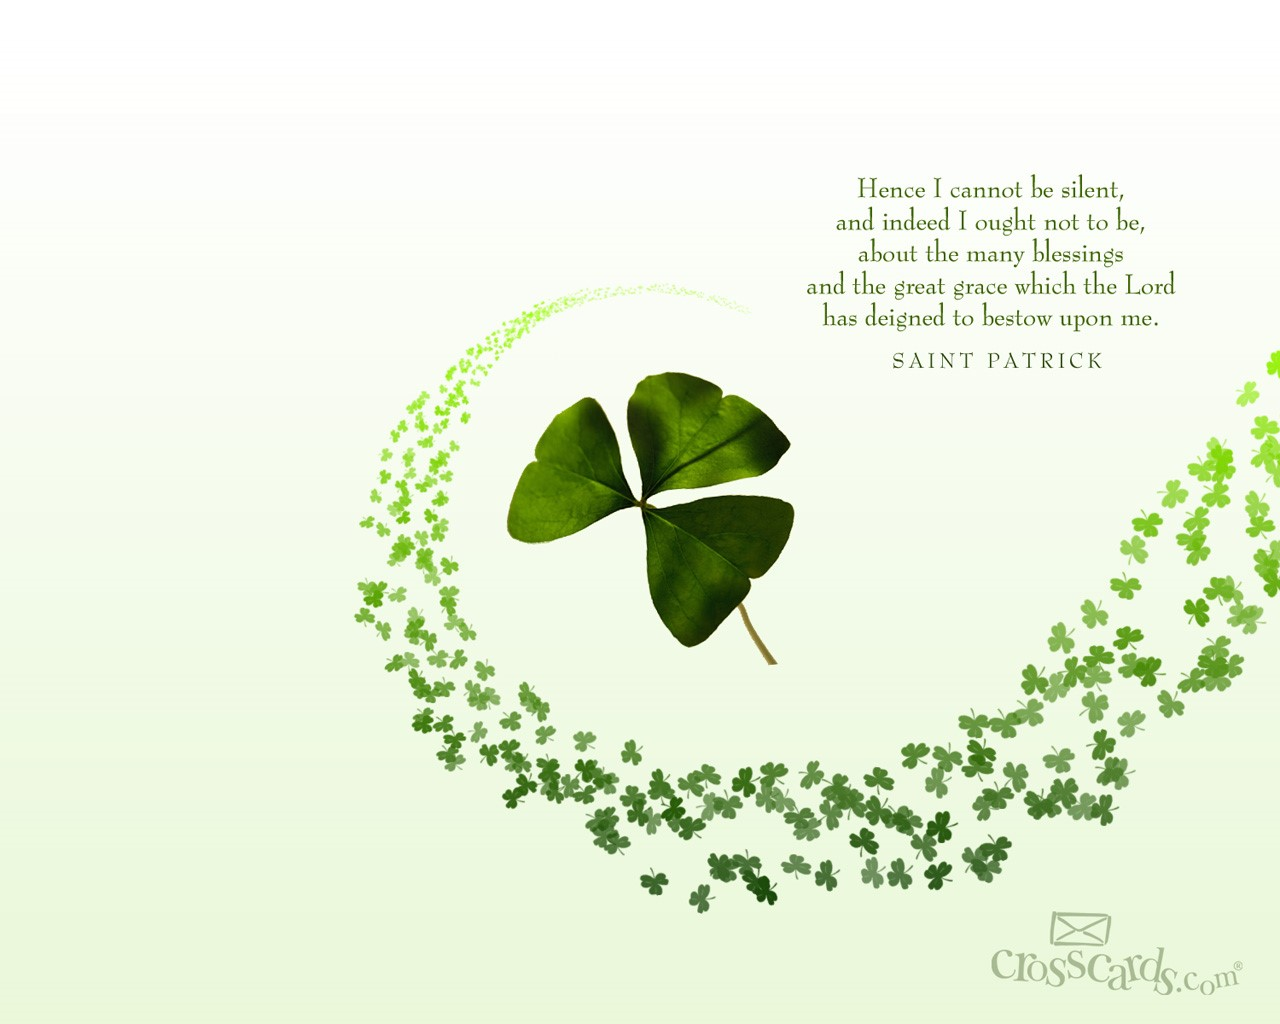 Free-St-Patricks-Day-Best-Images-Collections-HD-For-×1080-Free-St-Patrick-Day-Wallpa-wallpaper-wpc9005290